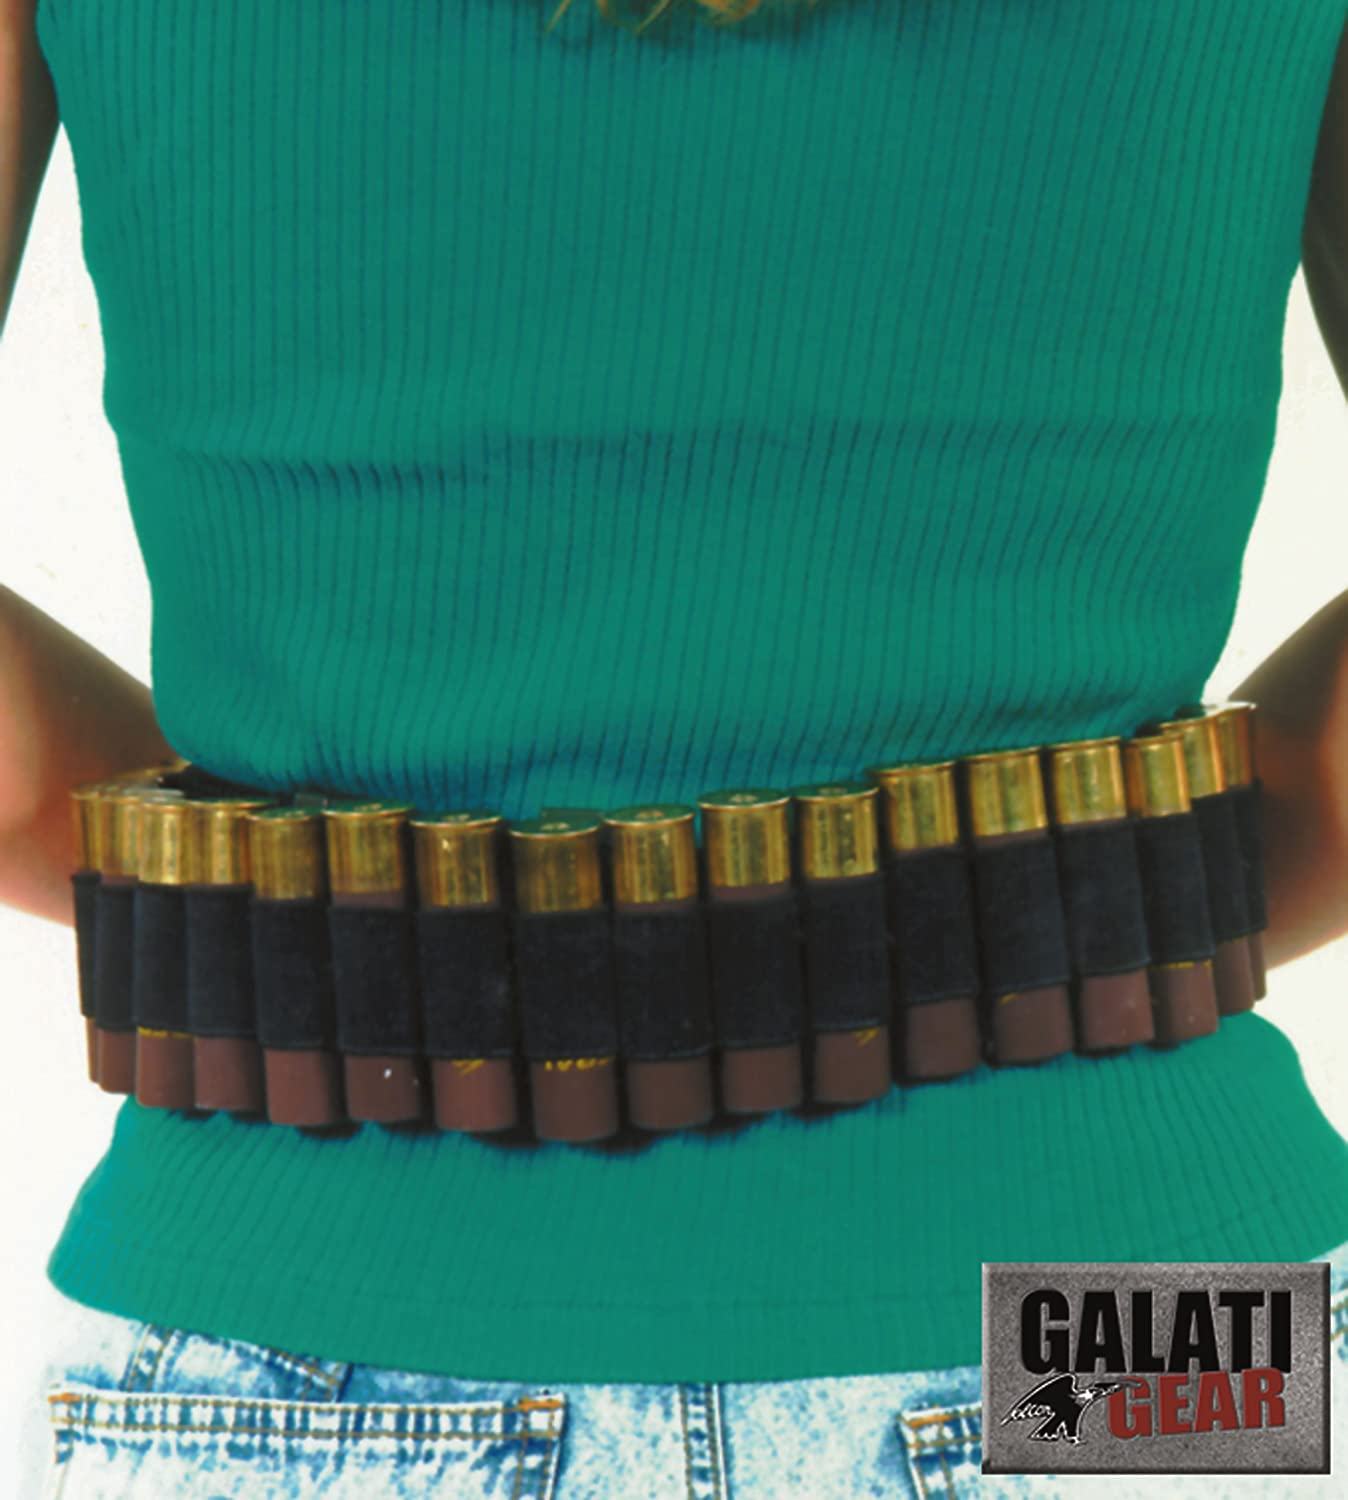 Galati Gear Shotgun Belt